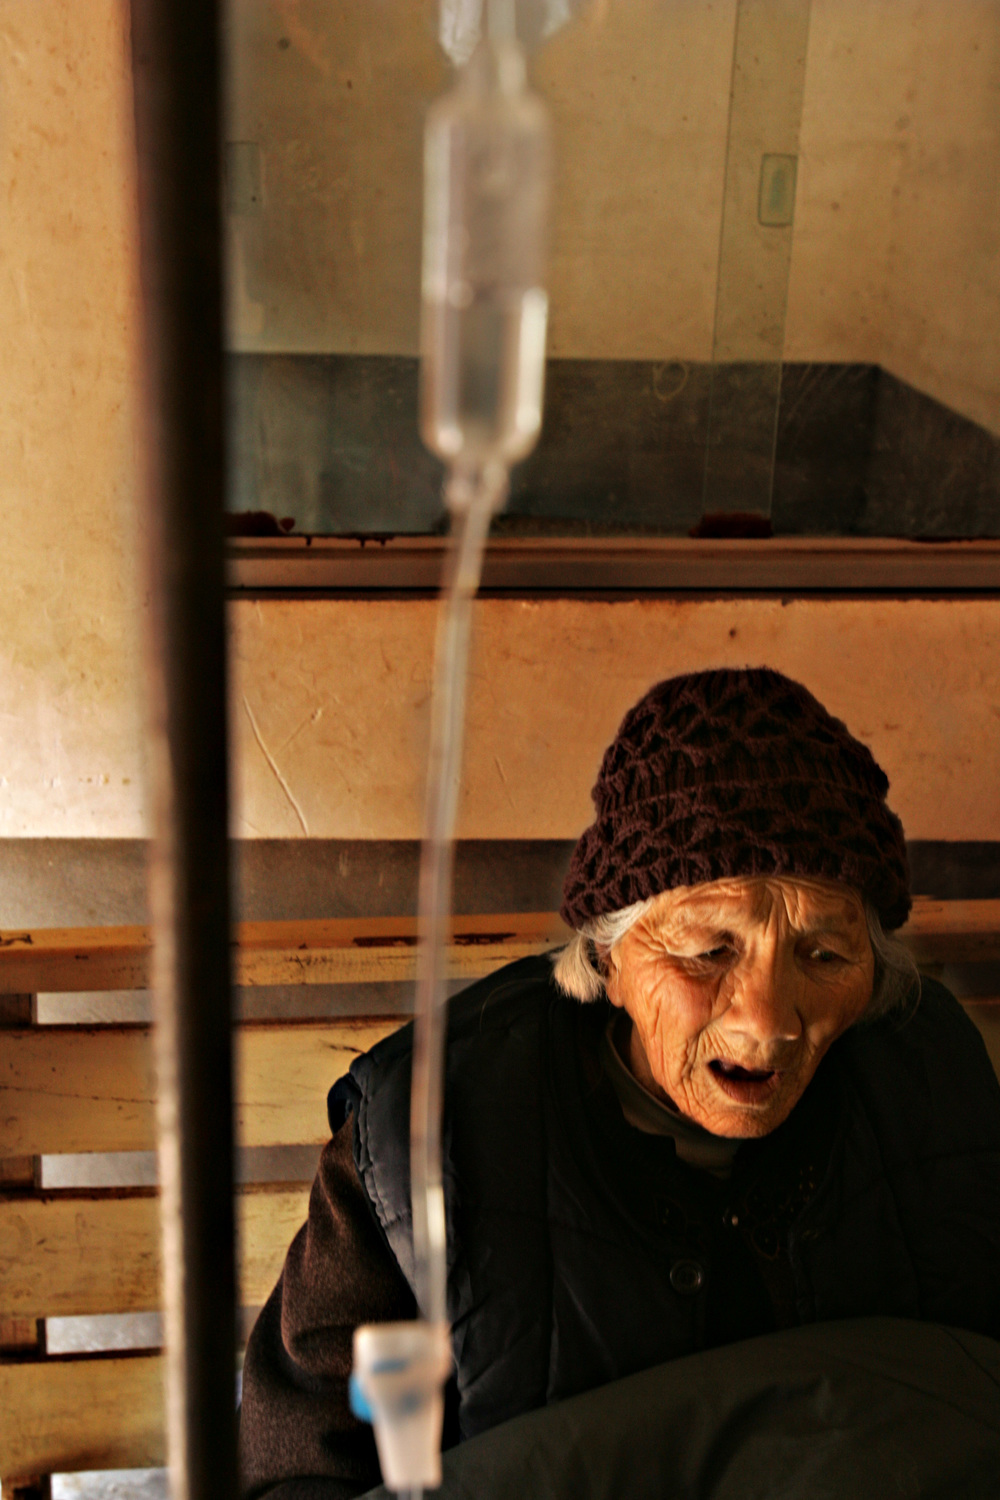 A woman is treated for a stomach ailment using an IV drip in Sunying Village in Shenqiu County. The local caregiver suspects she has stomach cancer, but she is unable to afford medical care.